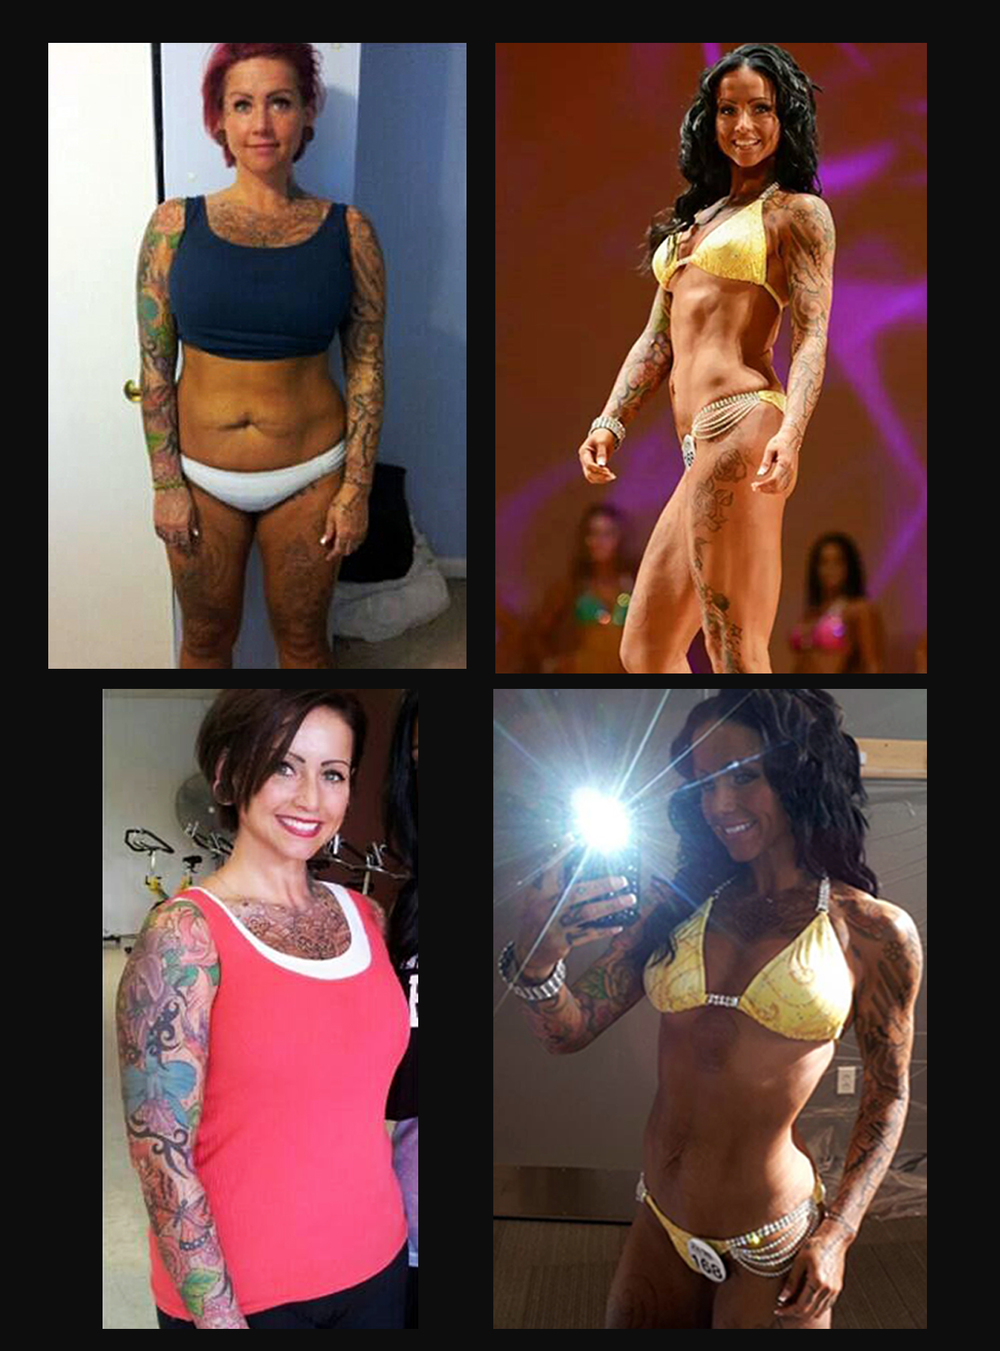 JENNIFER'S AWESOME TRANSFORMATION AND WBFF DEBUT